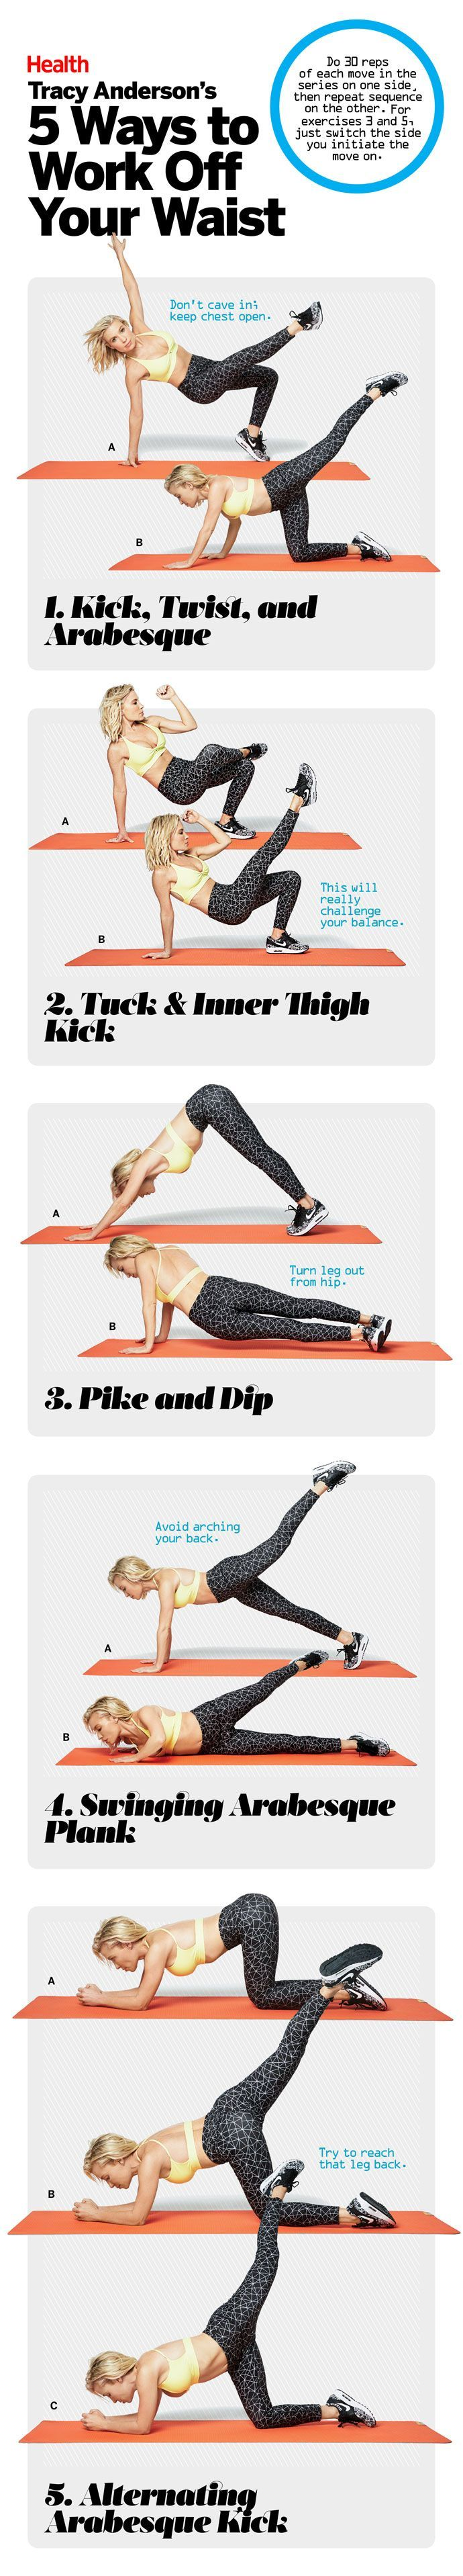 Rock a cutout swimsuit or dress without fear of side spillage thanks to this waist workout from Tracy Anderson | Health.com